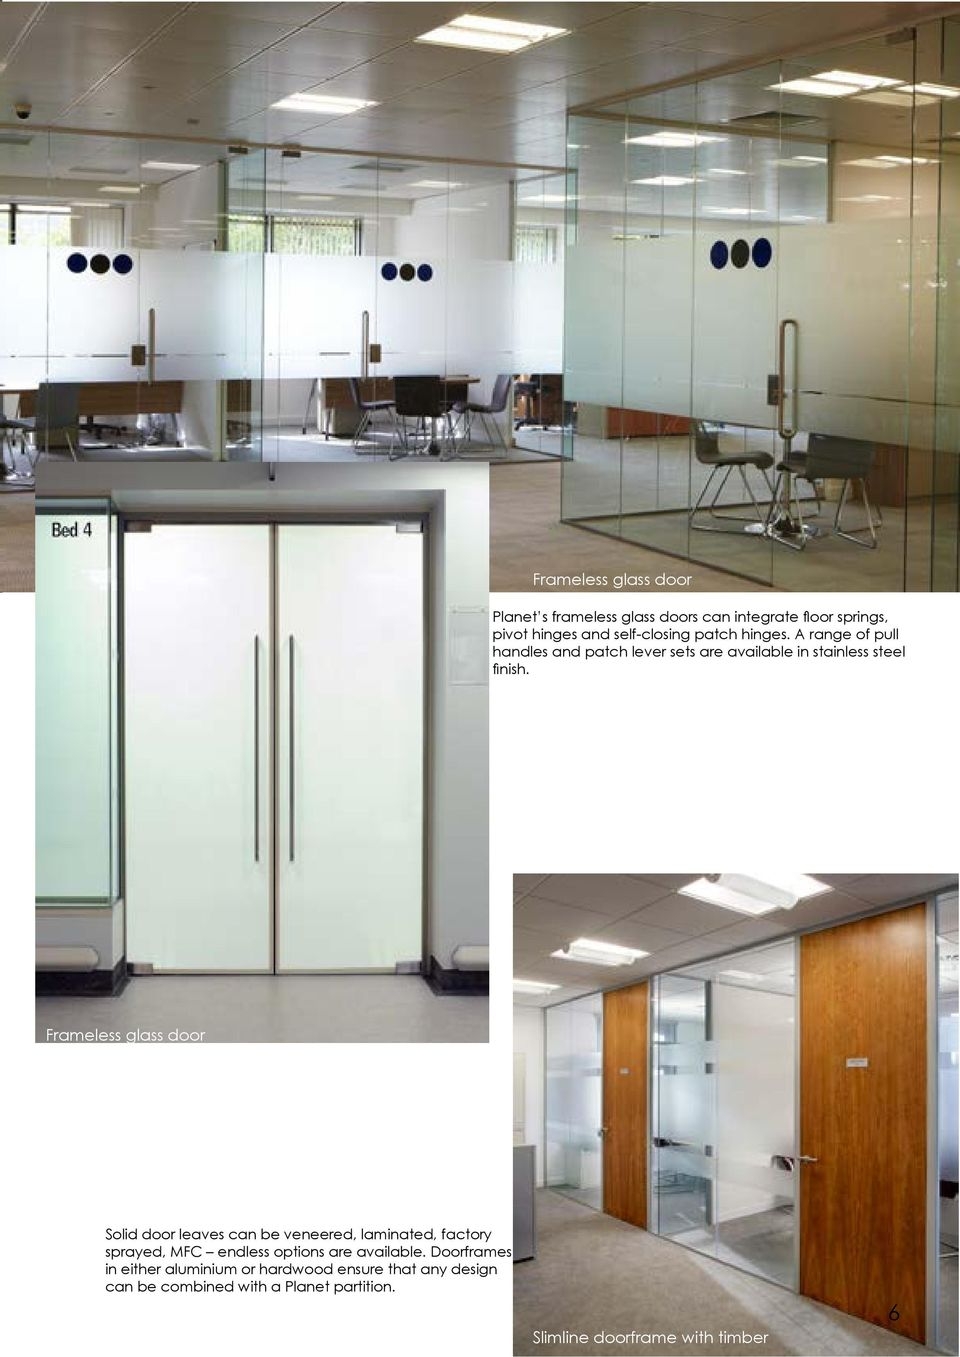 Frameless glass door Solid door leaves can be veneered, laminated, factory sprayed, MFC endless options are available.